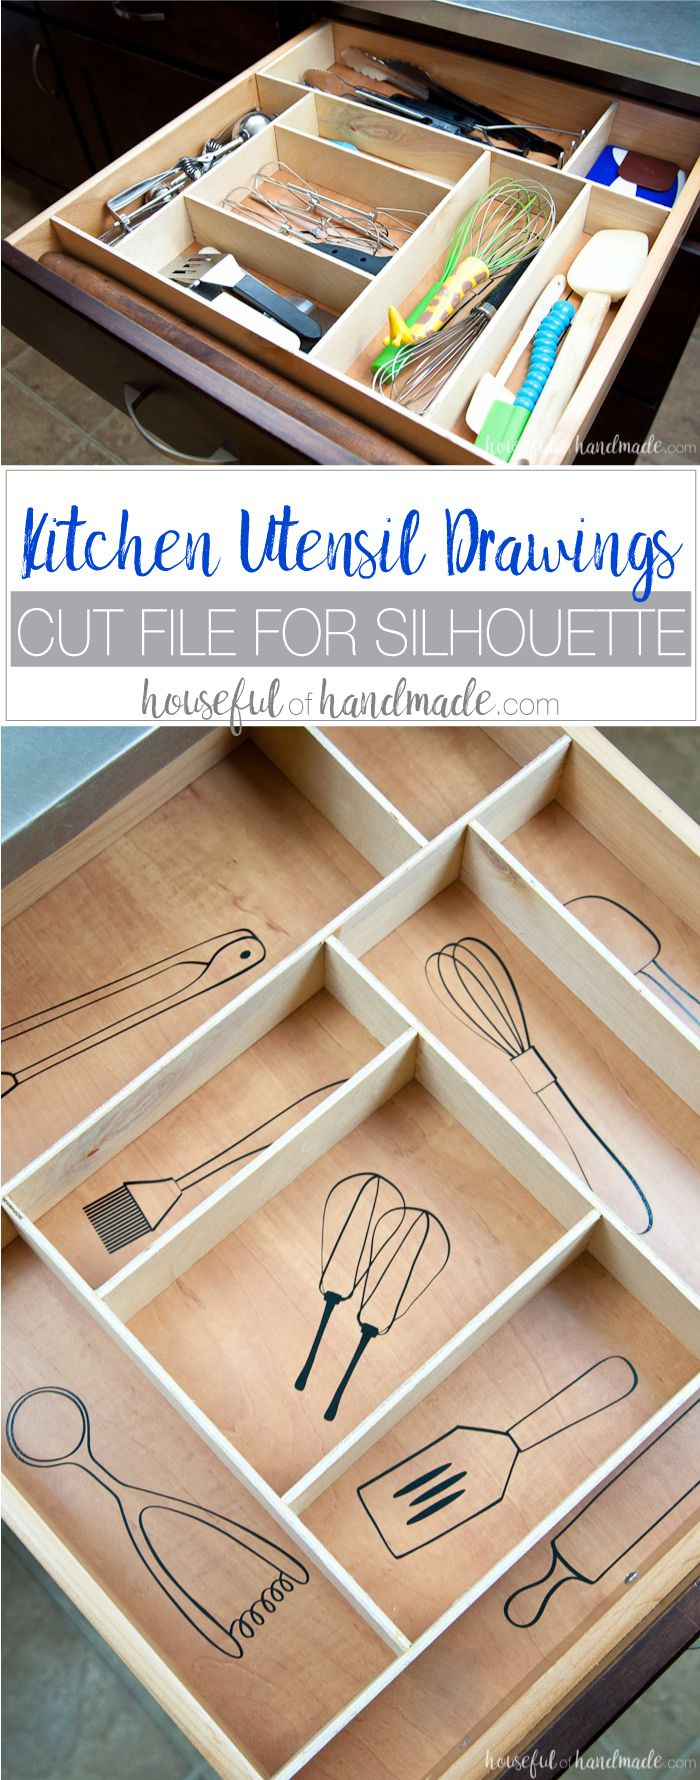 Tin bread box drawer insert - Kitchen Utensil Drawings Kitchen Drawer Organization